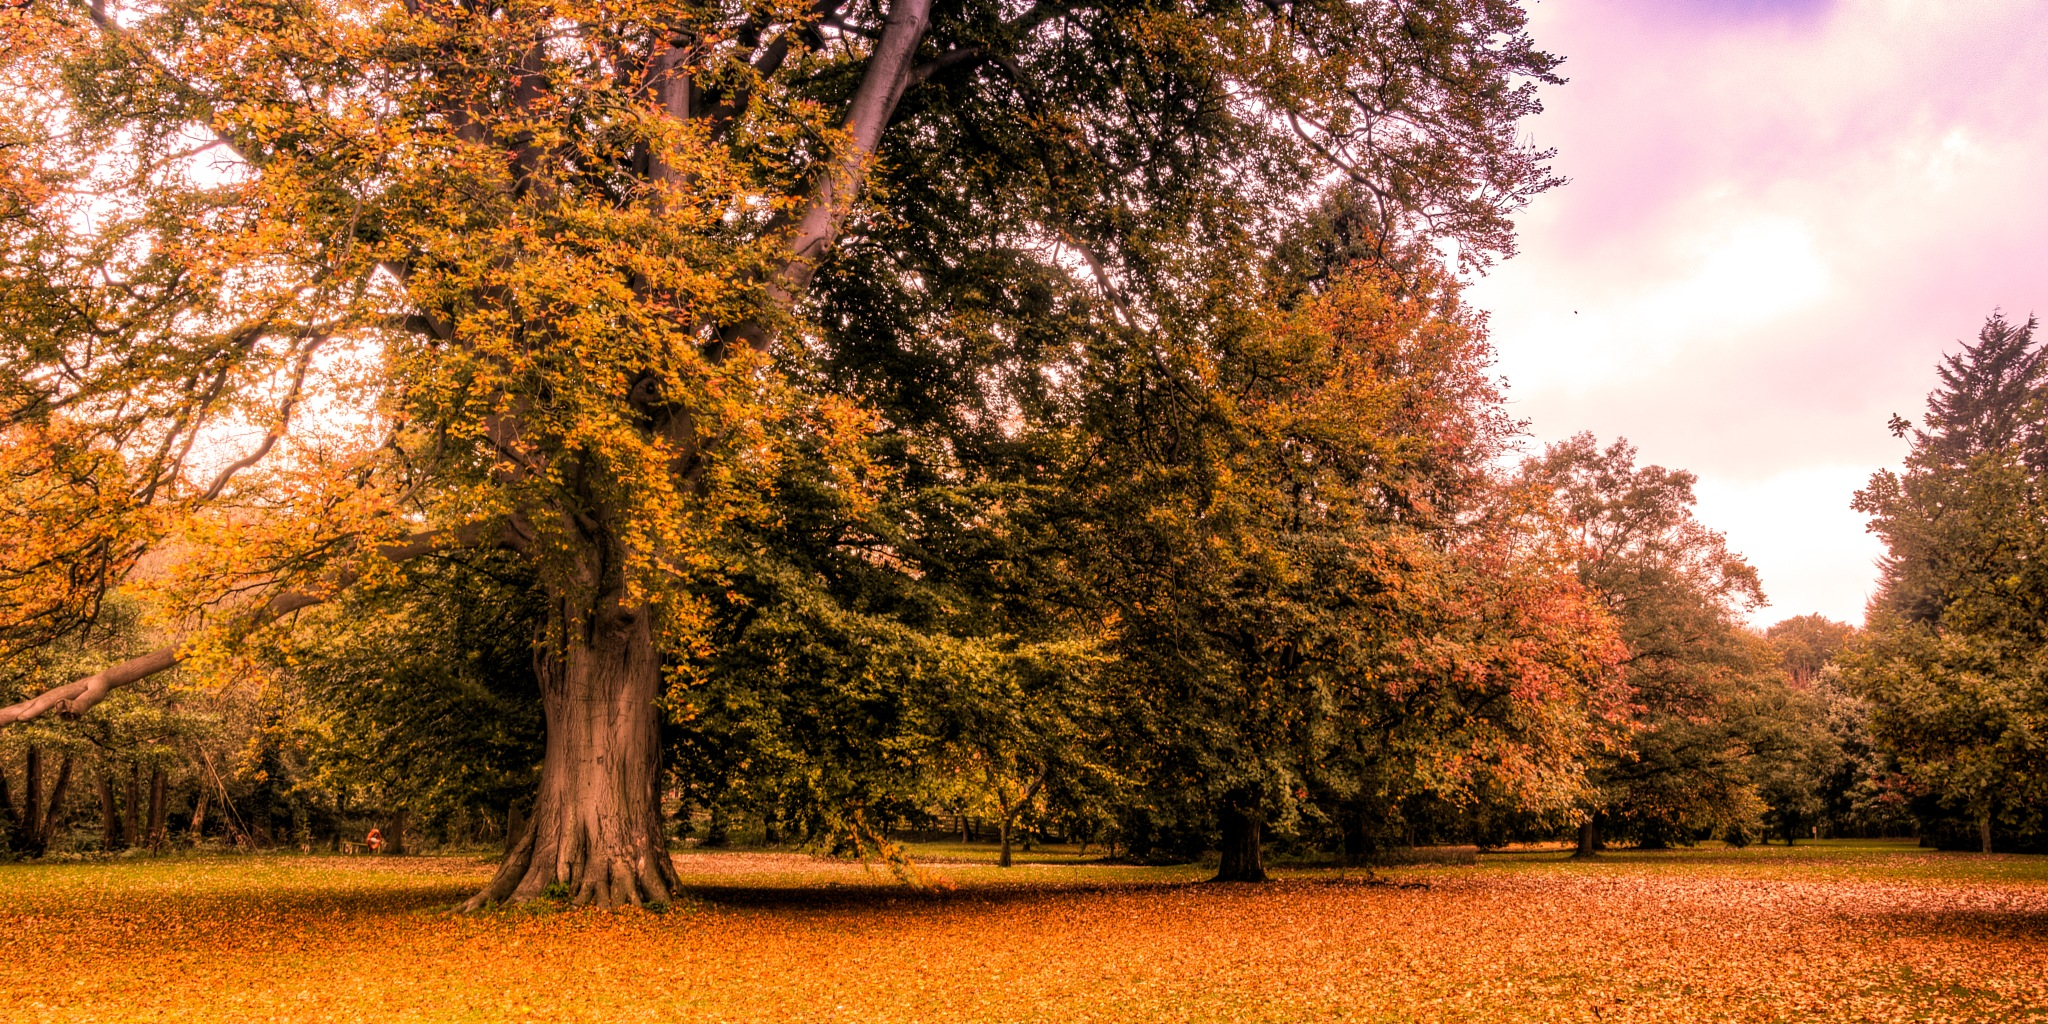 Autumn by kevin.wood.359126